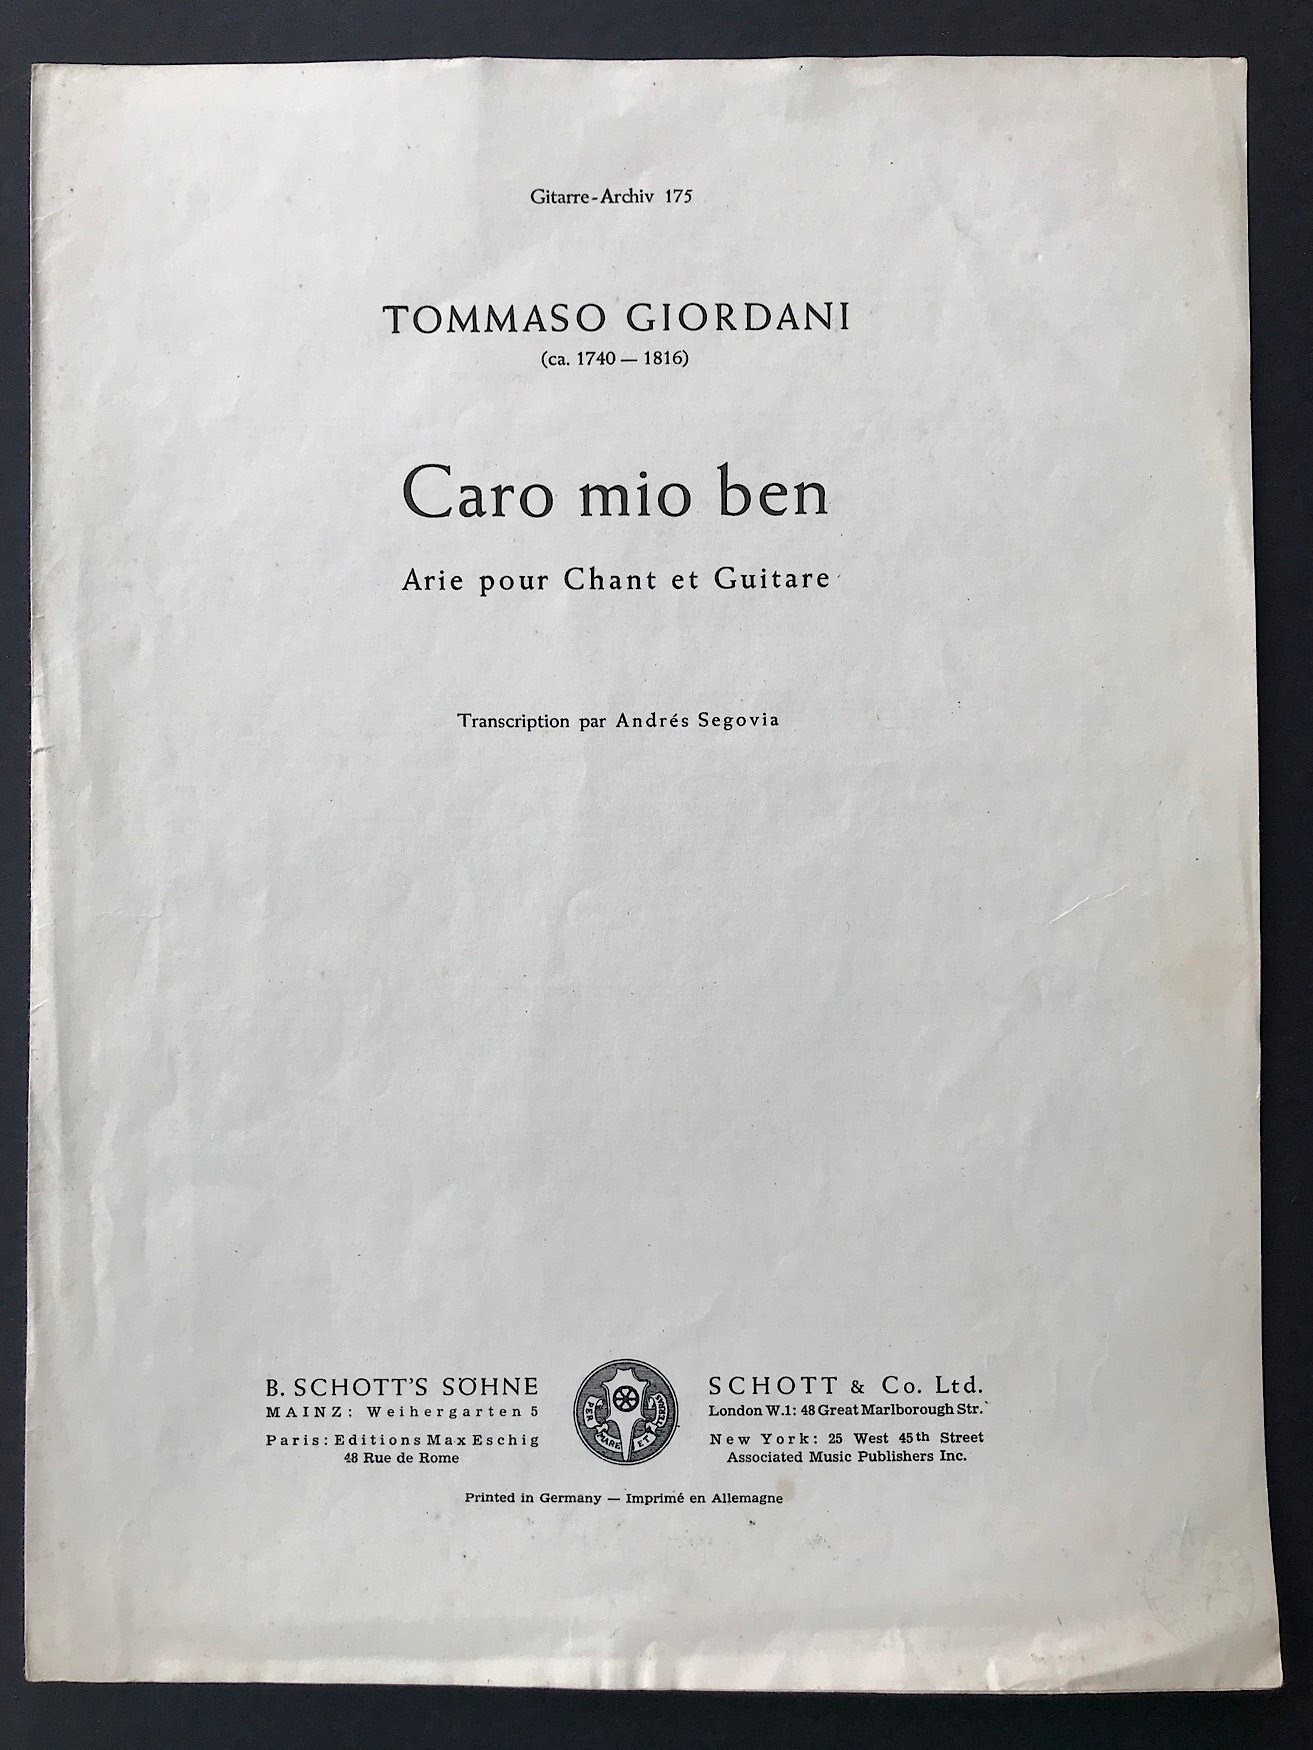 Caro Mio Ben by Thomas Giordani for Voice & Guitar